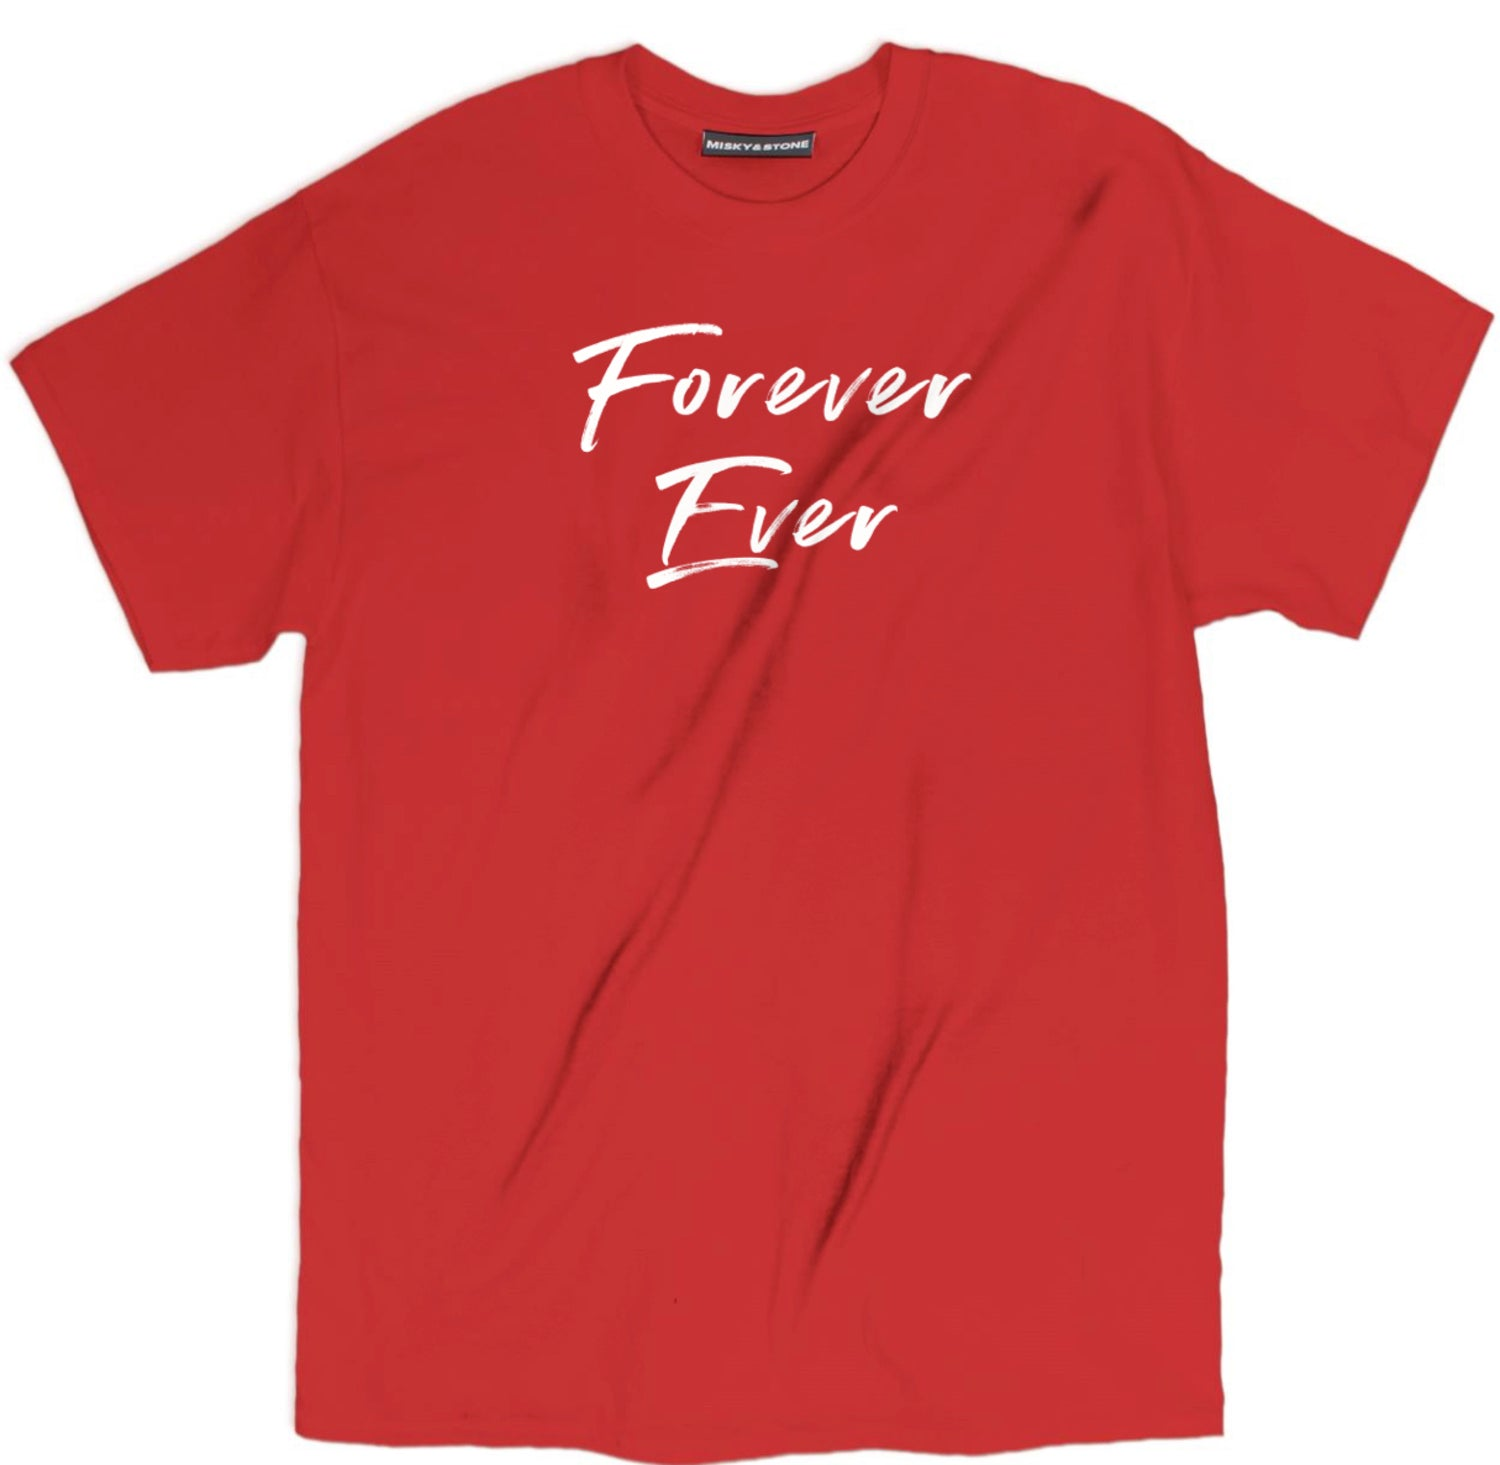 Forever Ever Tee